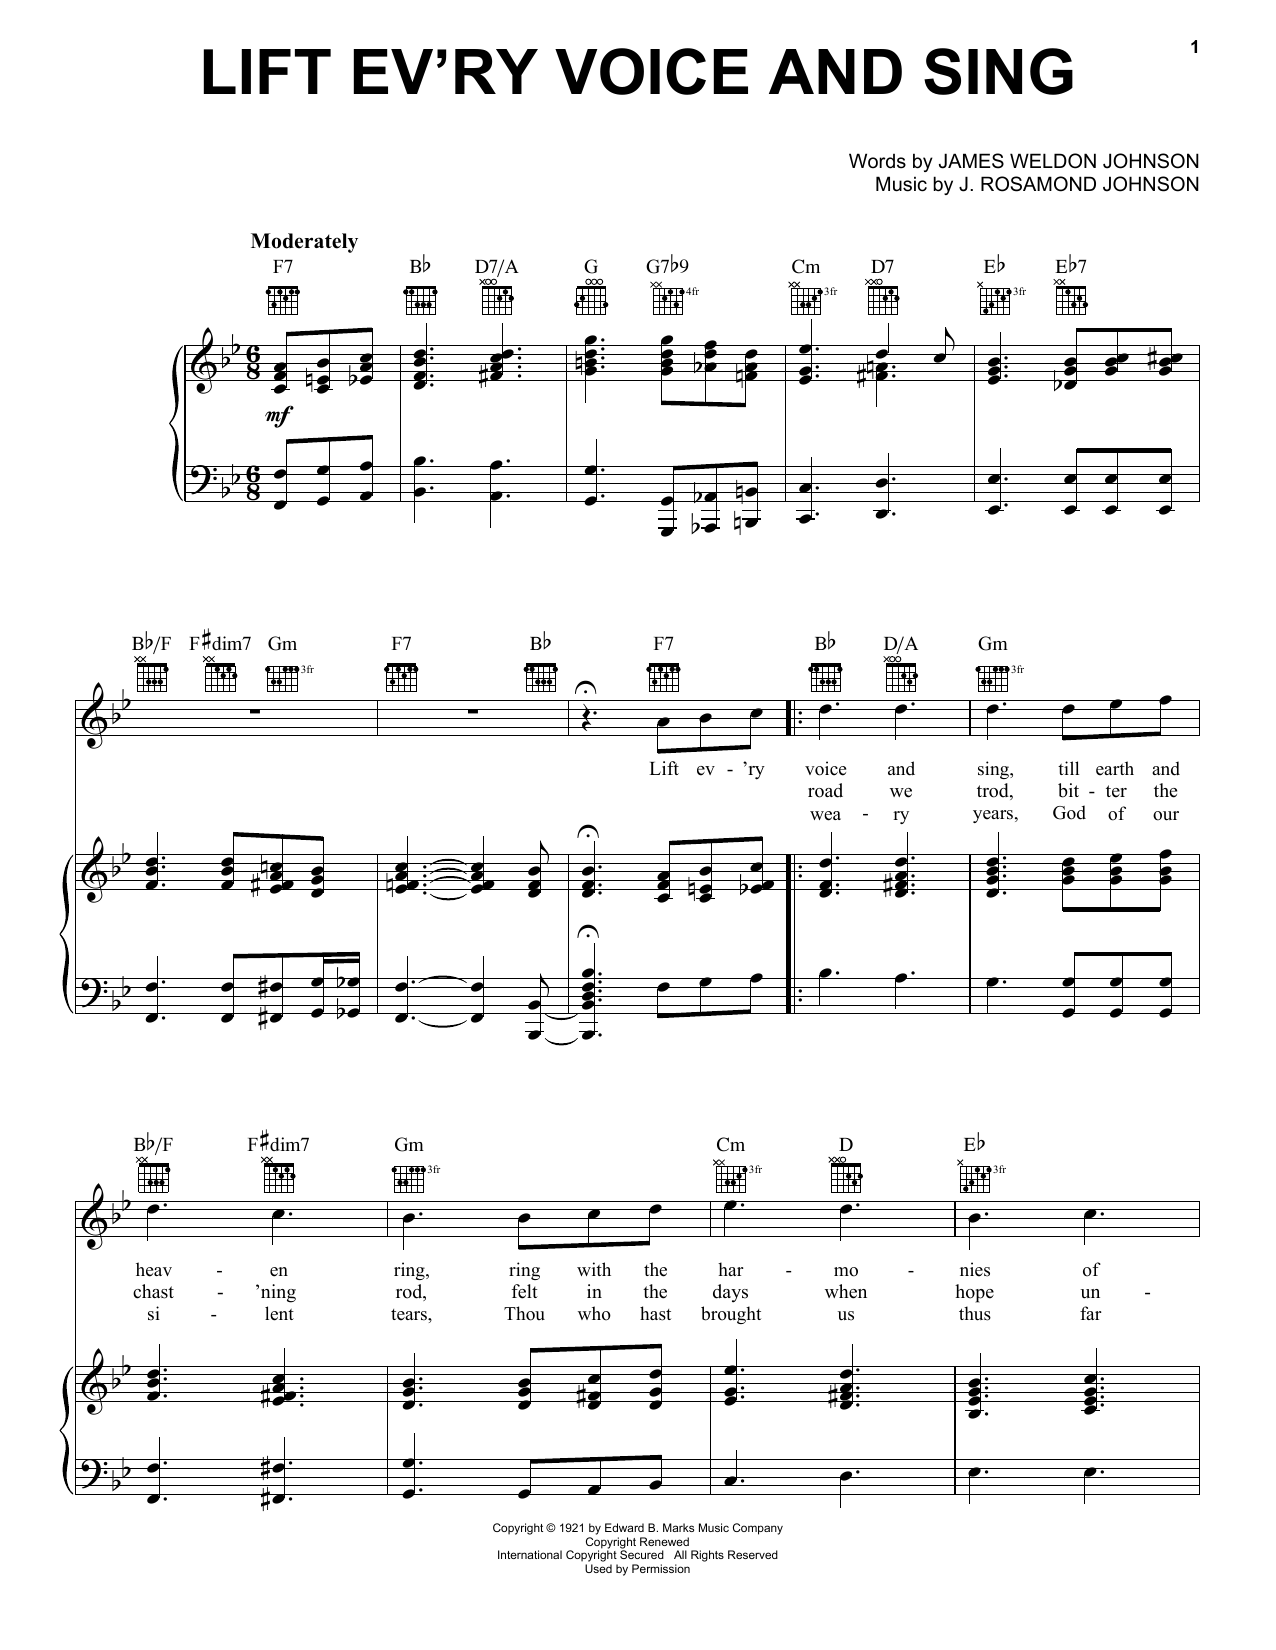 J. Rosamond Johnson Lift Ev'ry Voice And Sing sheet music notes and chords